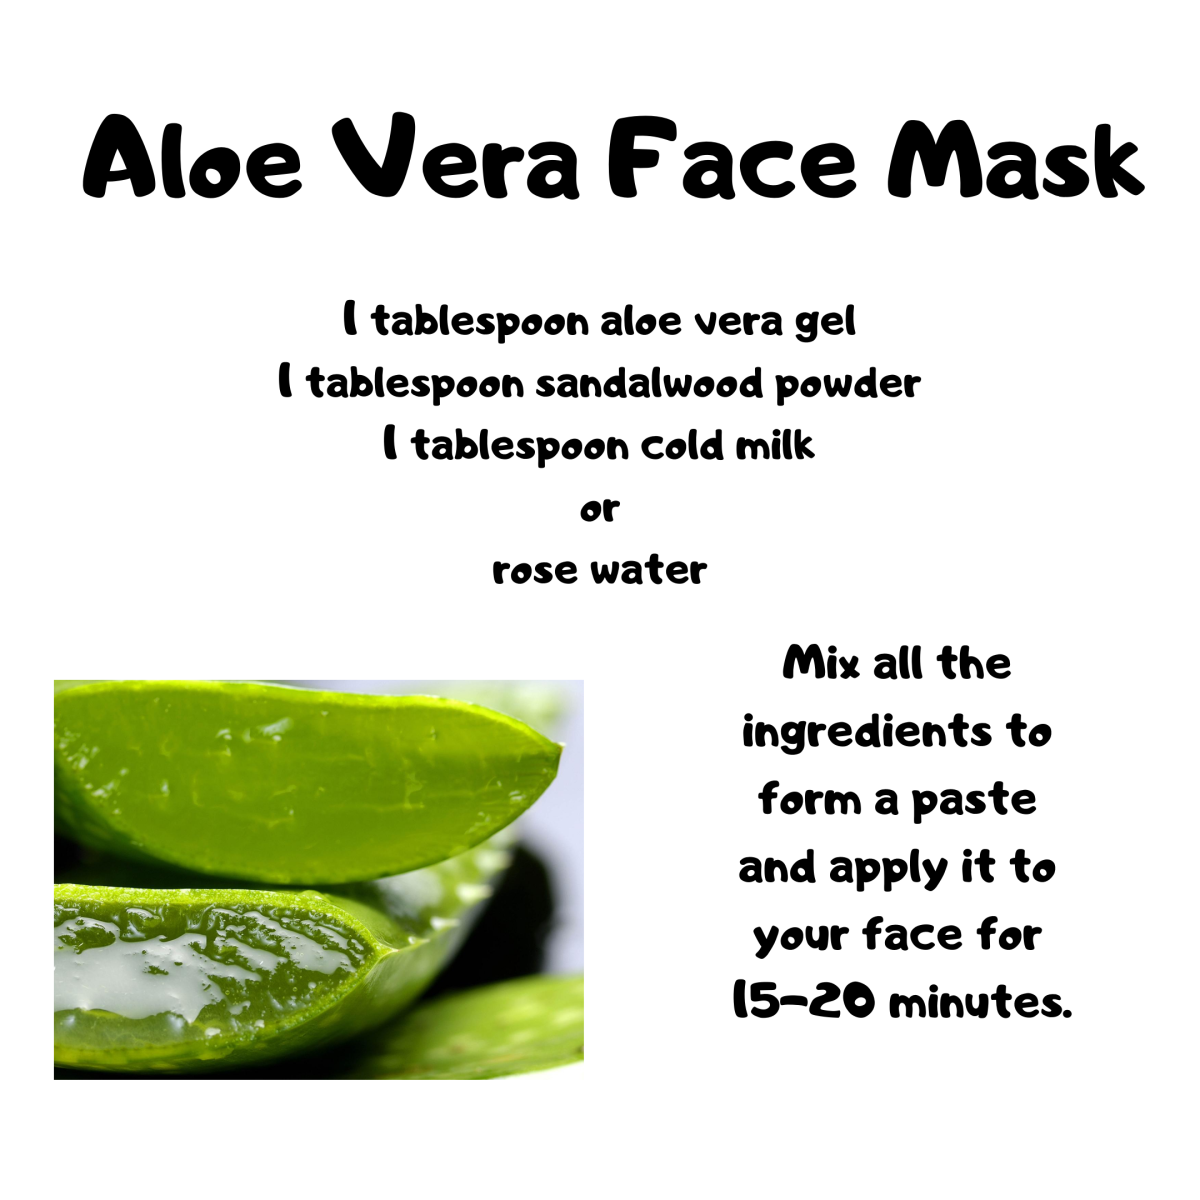 Aloevera will rejuvenate your skin and it is also believed to have anti-aging properties.